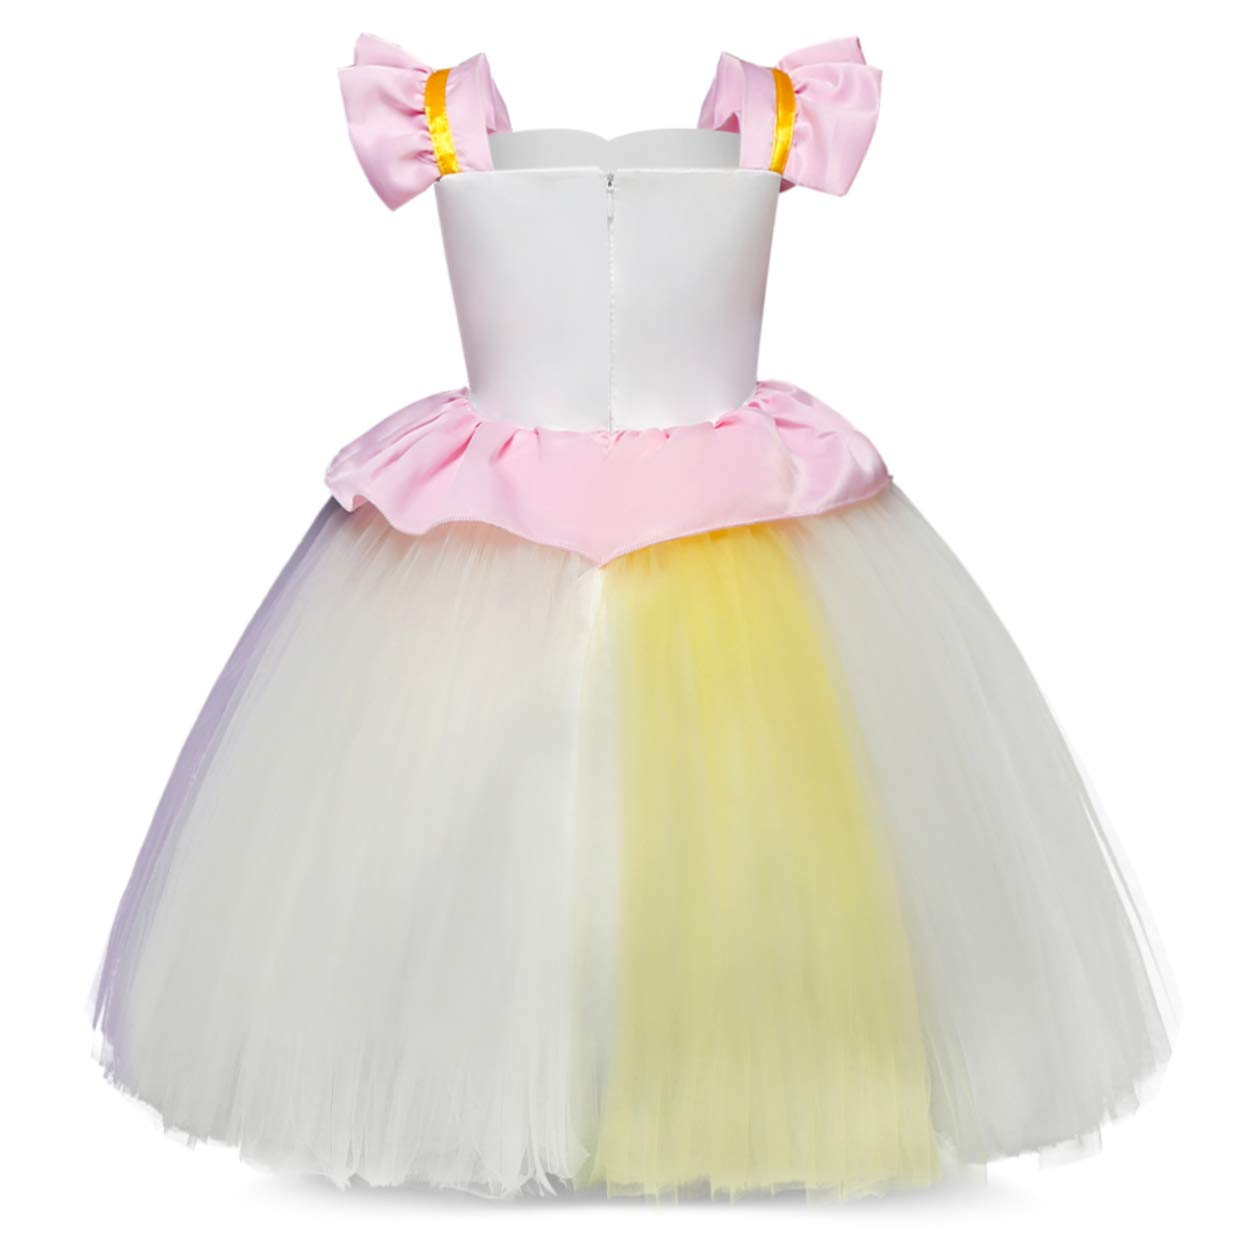 Cotrio Unicorn Costume Fancy Dress Up Flower Girls Dresses Pageant Party Evening Gowns Halloween Tutu Dress 4